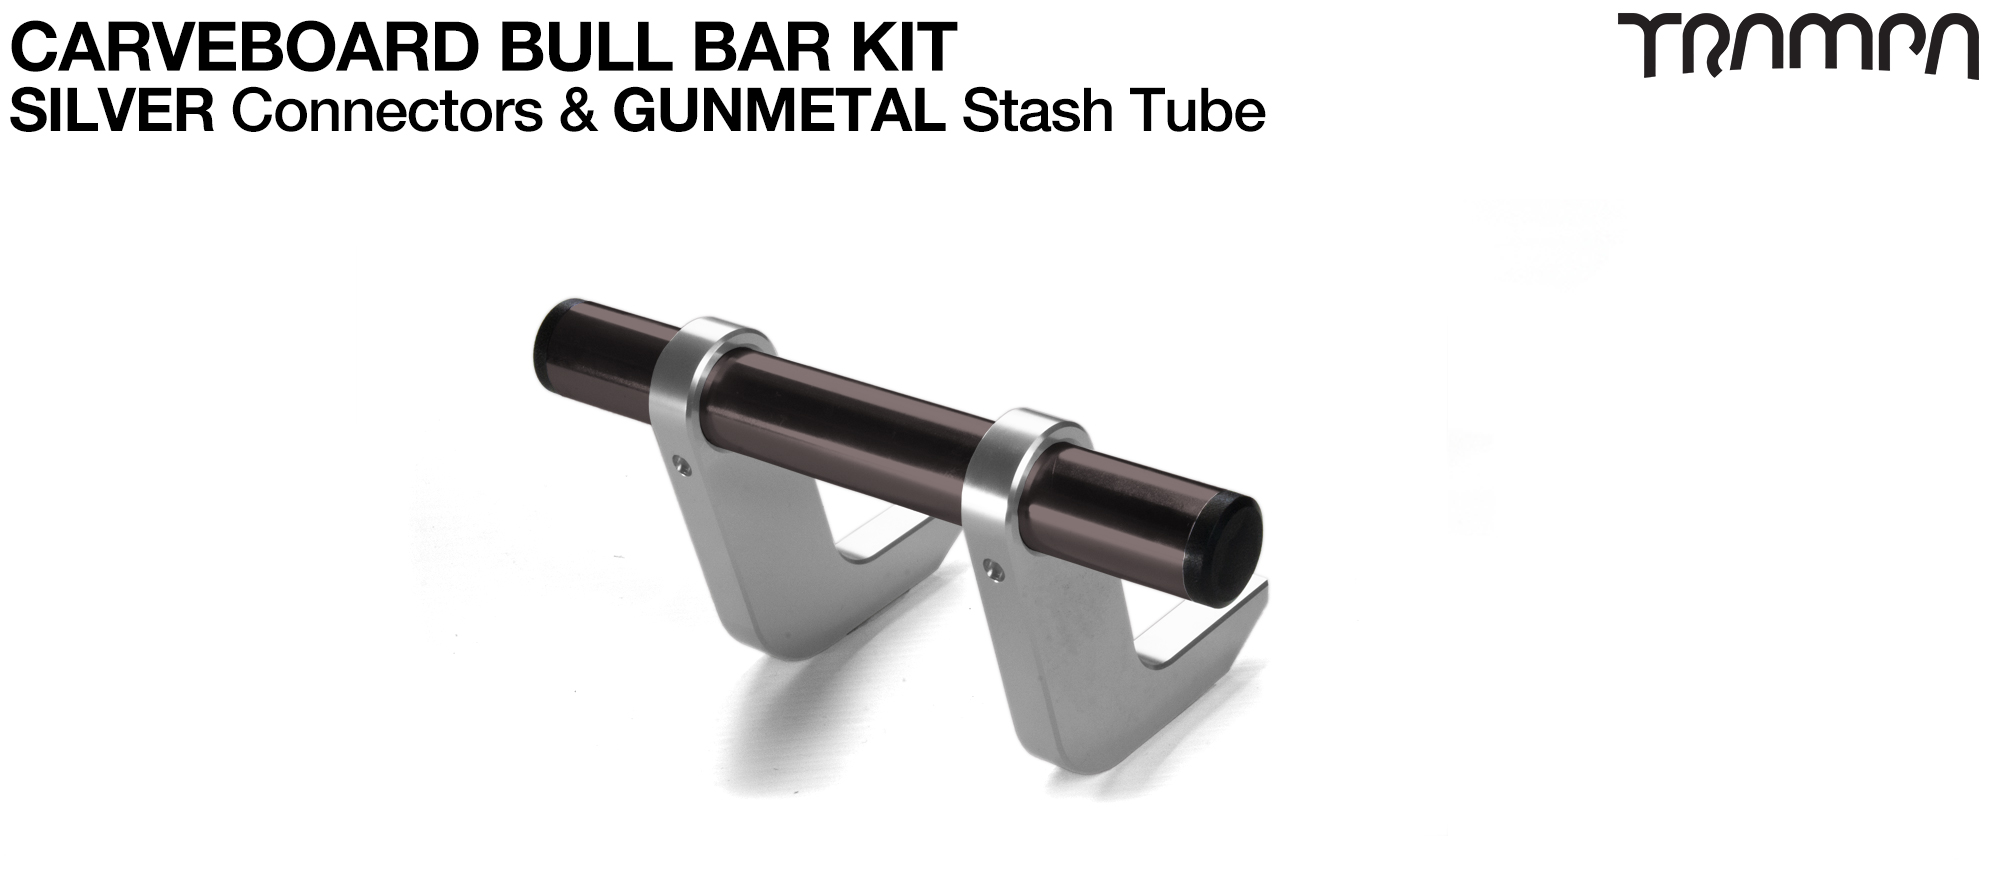 SILVER Uprights & GUNMETAL Crossbar BULL BARS for CARVE BOARDS using T6 Heat Treated CNC'd Aluminum Clamps, Hollow Aluminium Stash Tubes with Rubber end bungs